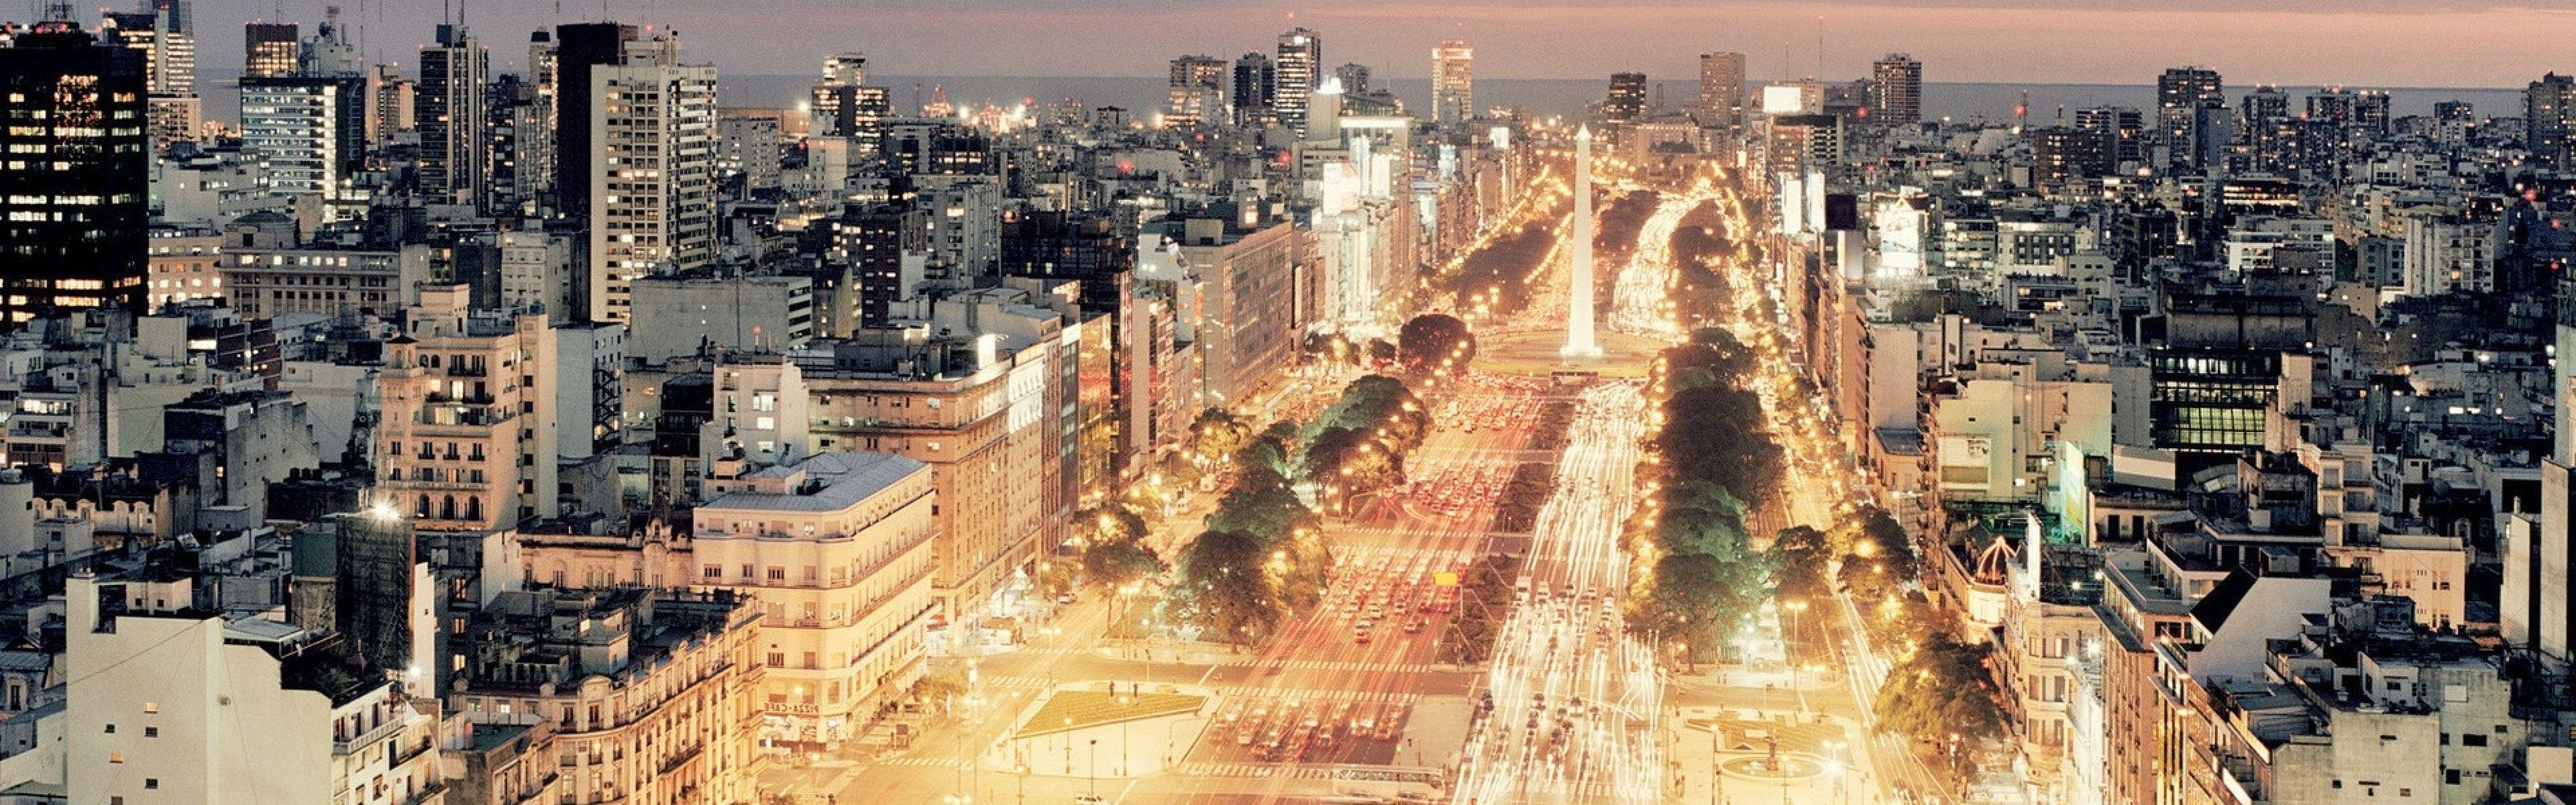 Download Wallpaper 3840x1200 Buenos aires, Traffic, City, Night ...